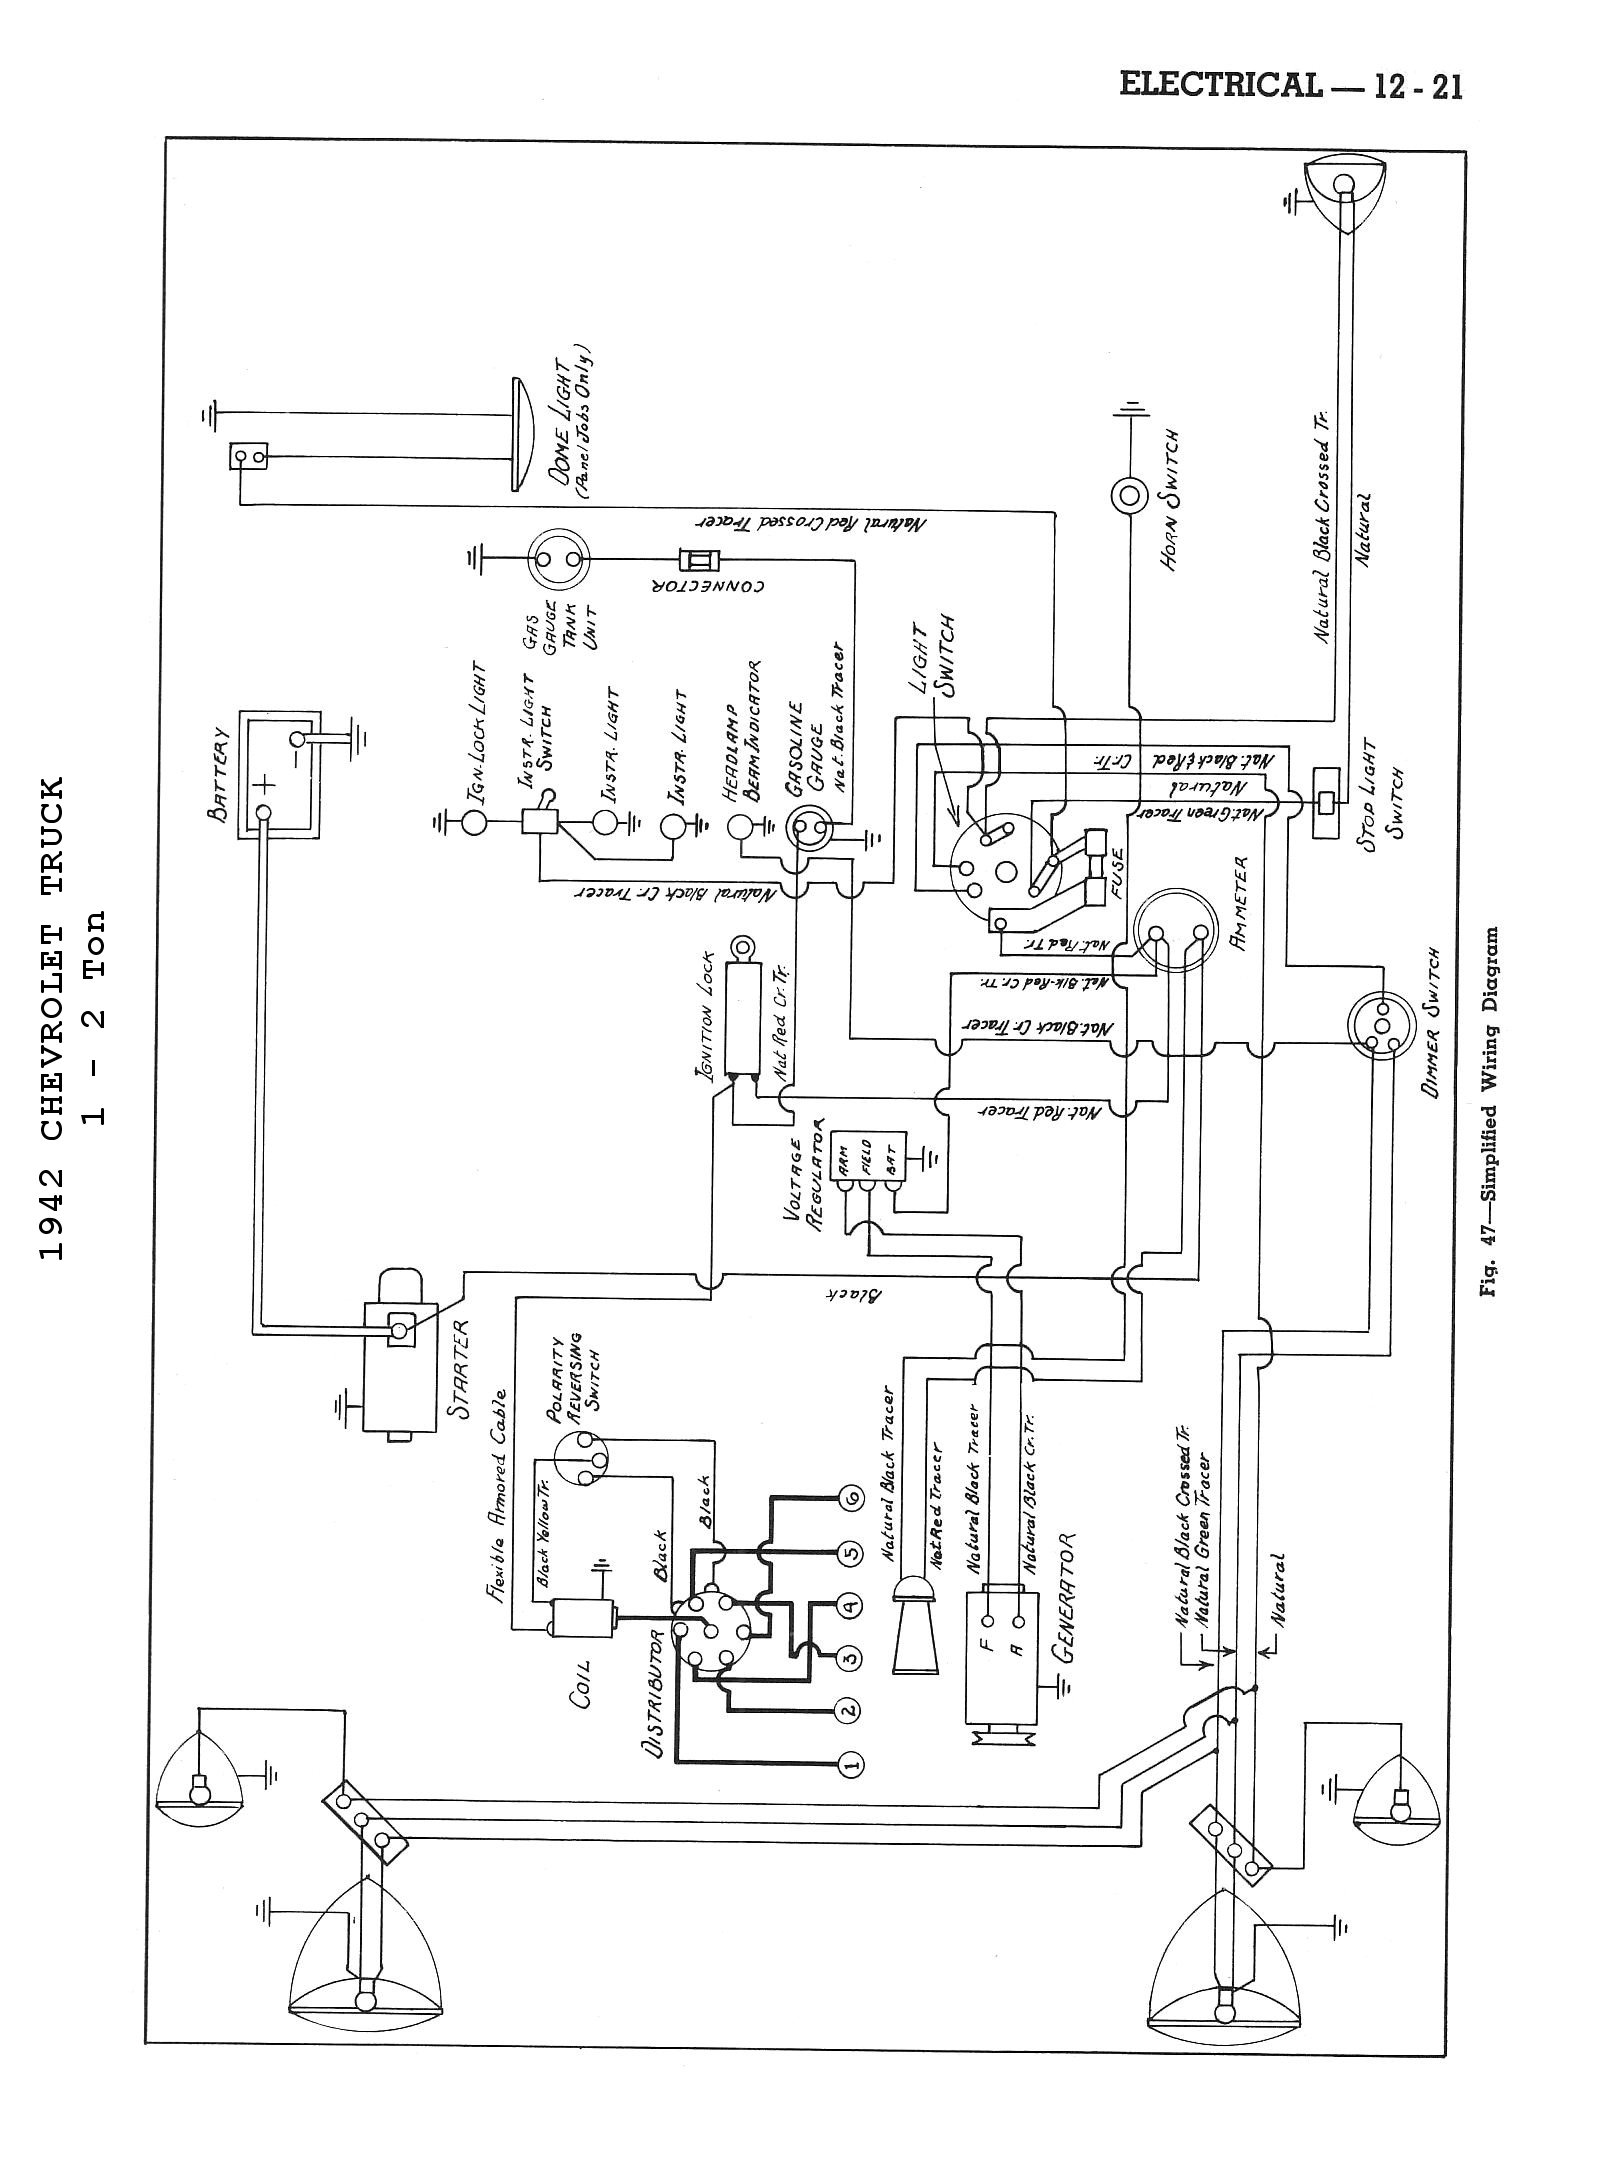 1955 Ford Power Steering Diagram likewise Desoto Windshield Washer System Diagram furthermore 1966 Lincoln Continental Window Wiring Diagram moreover Wiring also 1990 Chevy K5 Blazer Wiring Diagram. on 1959 impala wiring diagram free download schematic